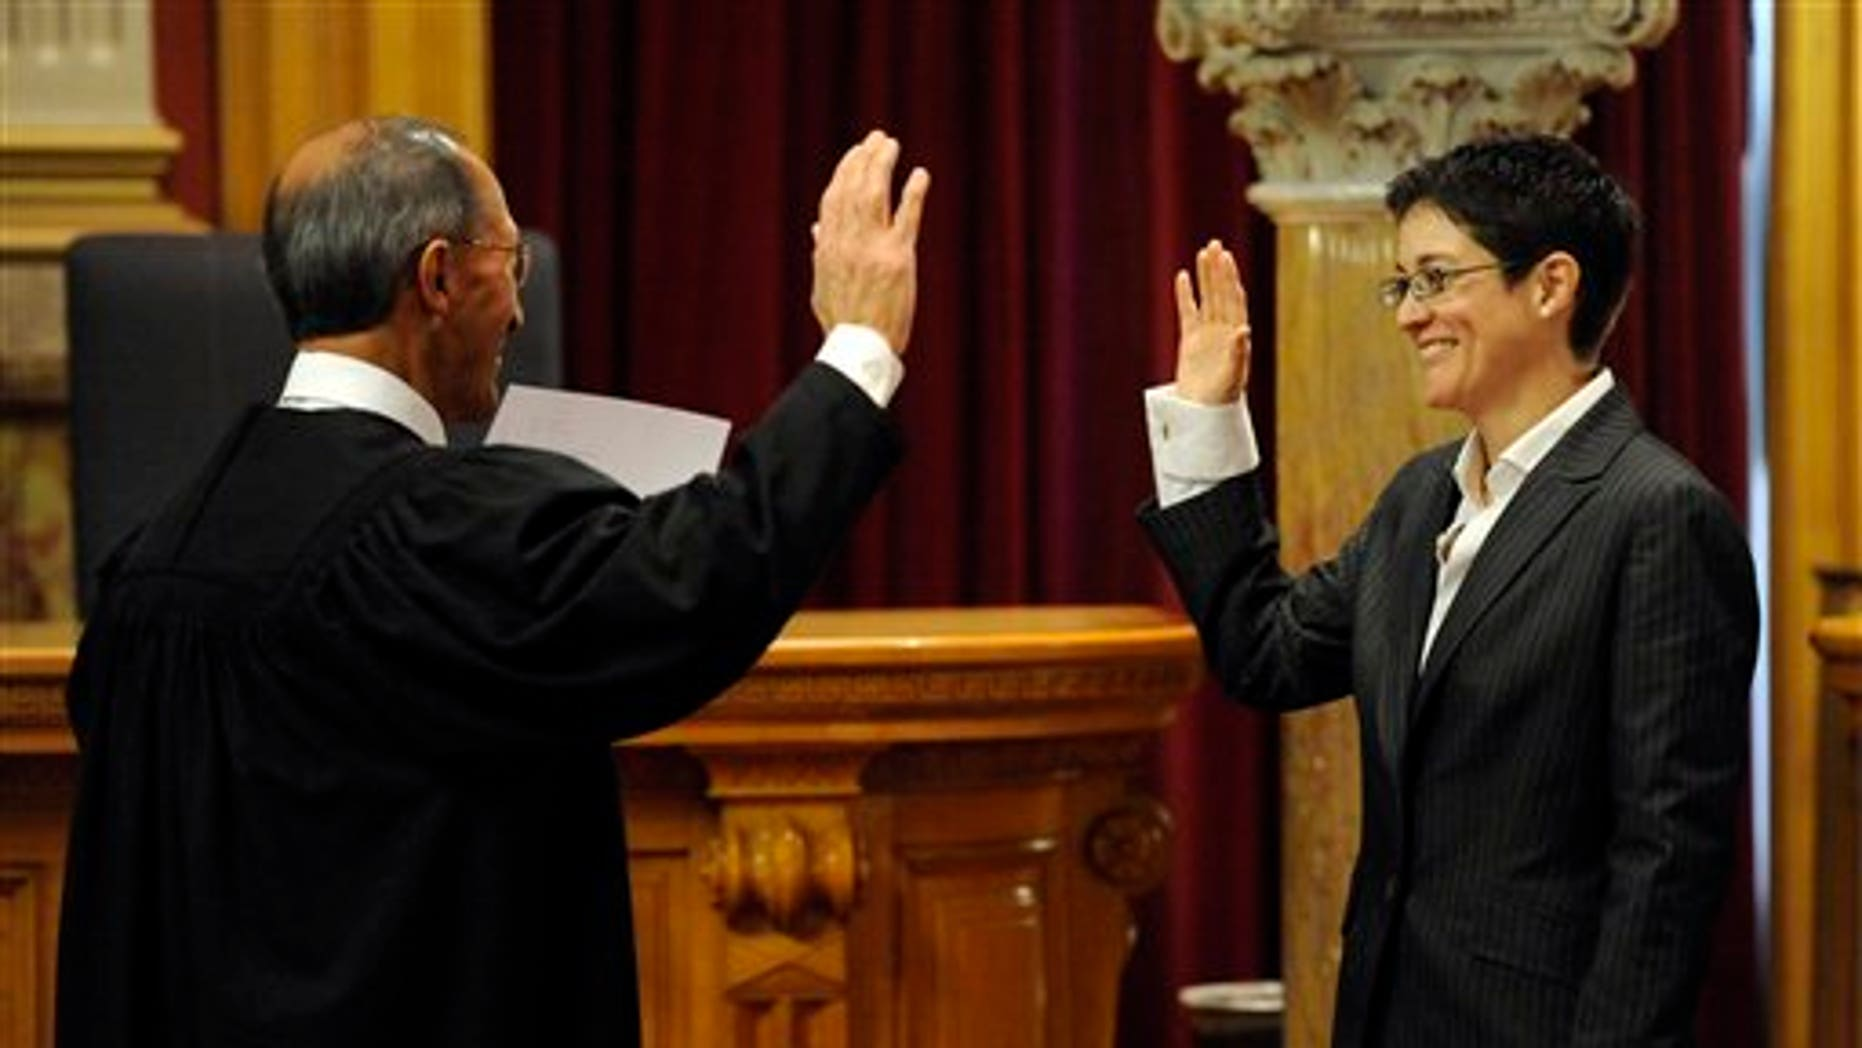 Monica Marquez is sworn in as a new State supreme court justice by her father, senior judge Jose Marquez, at the State Capitol Friday, Dec. 10, 2010, in Denver. Marquez replaced retired Chief Justice Mary Mullarkey.  (AP Photo/Jack Dempsey)